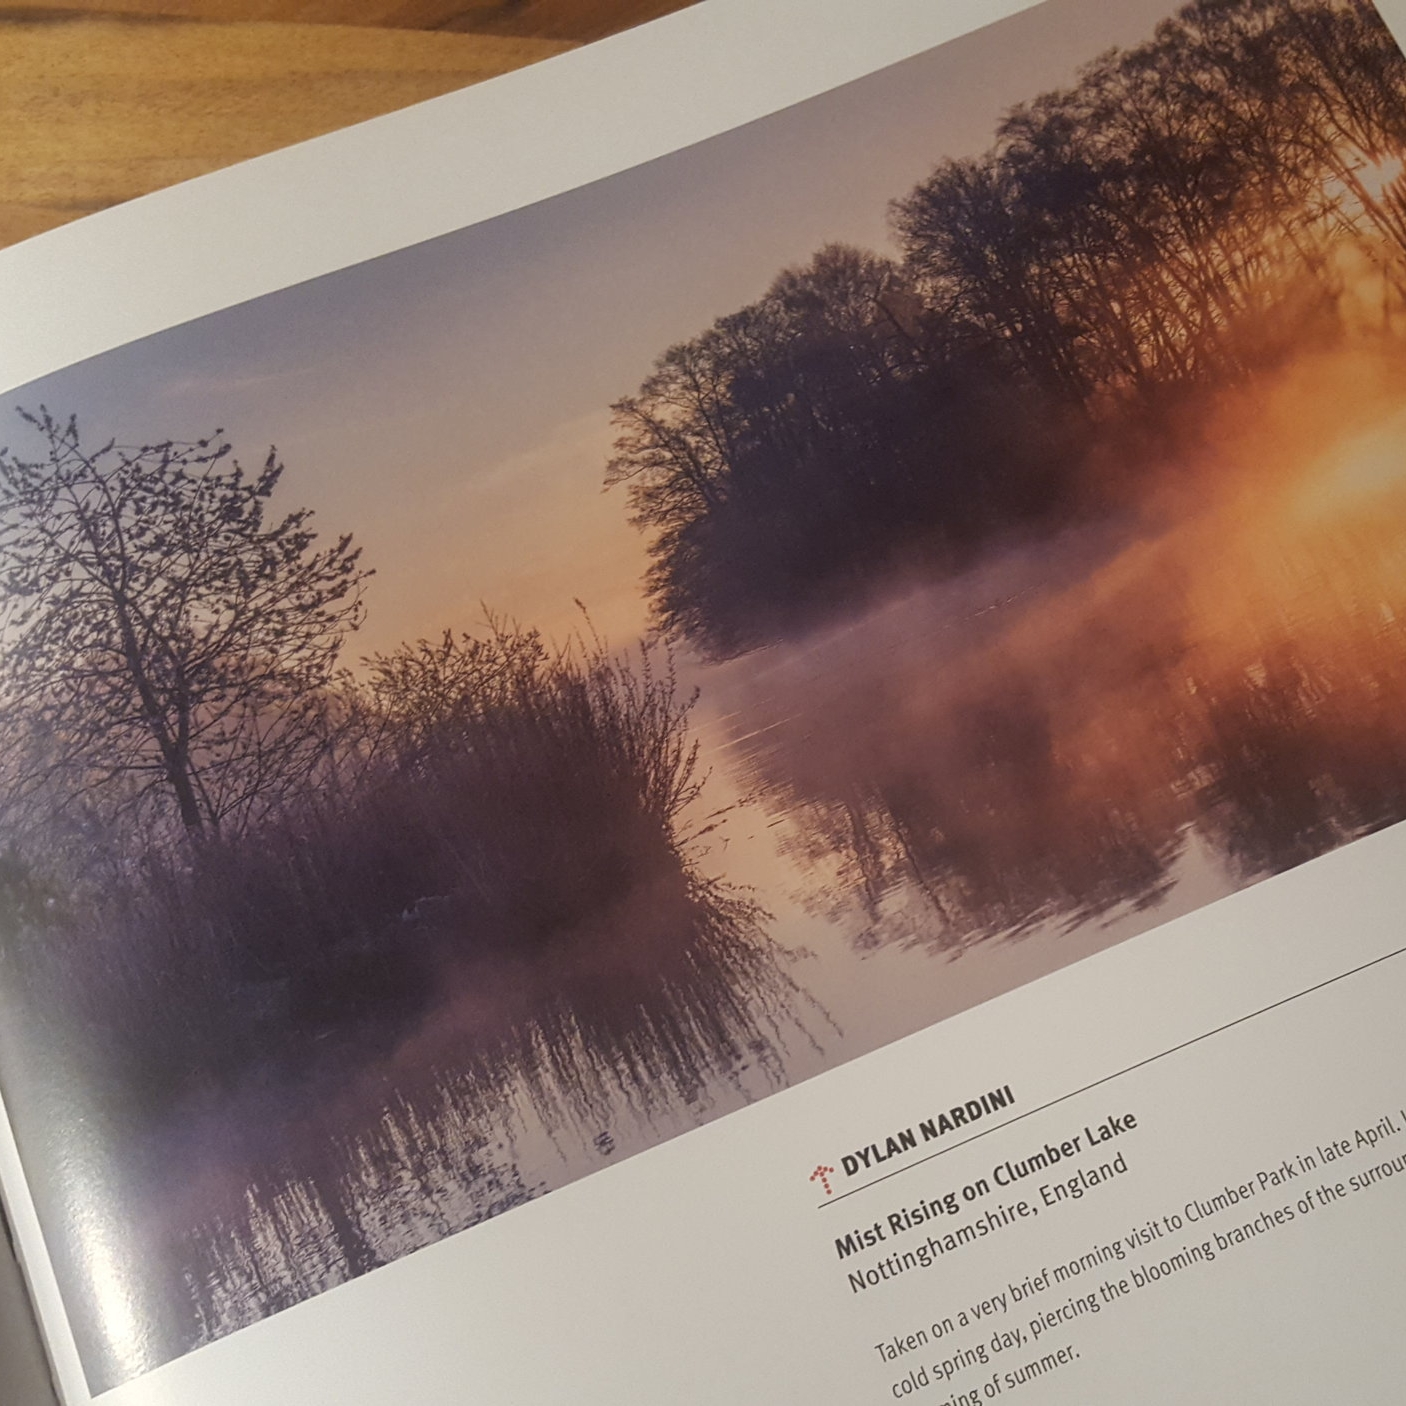 My Image in LPOTY 10